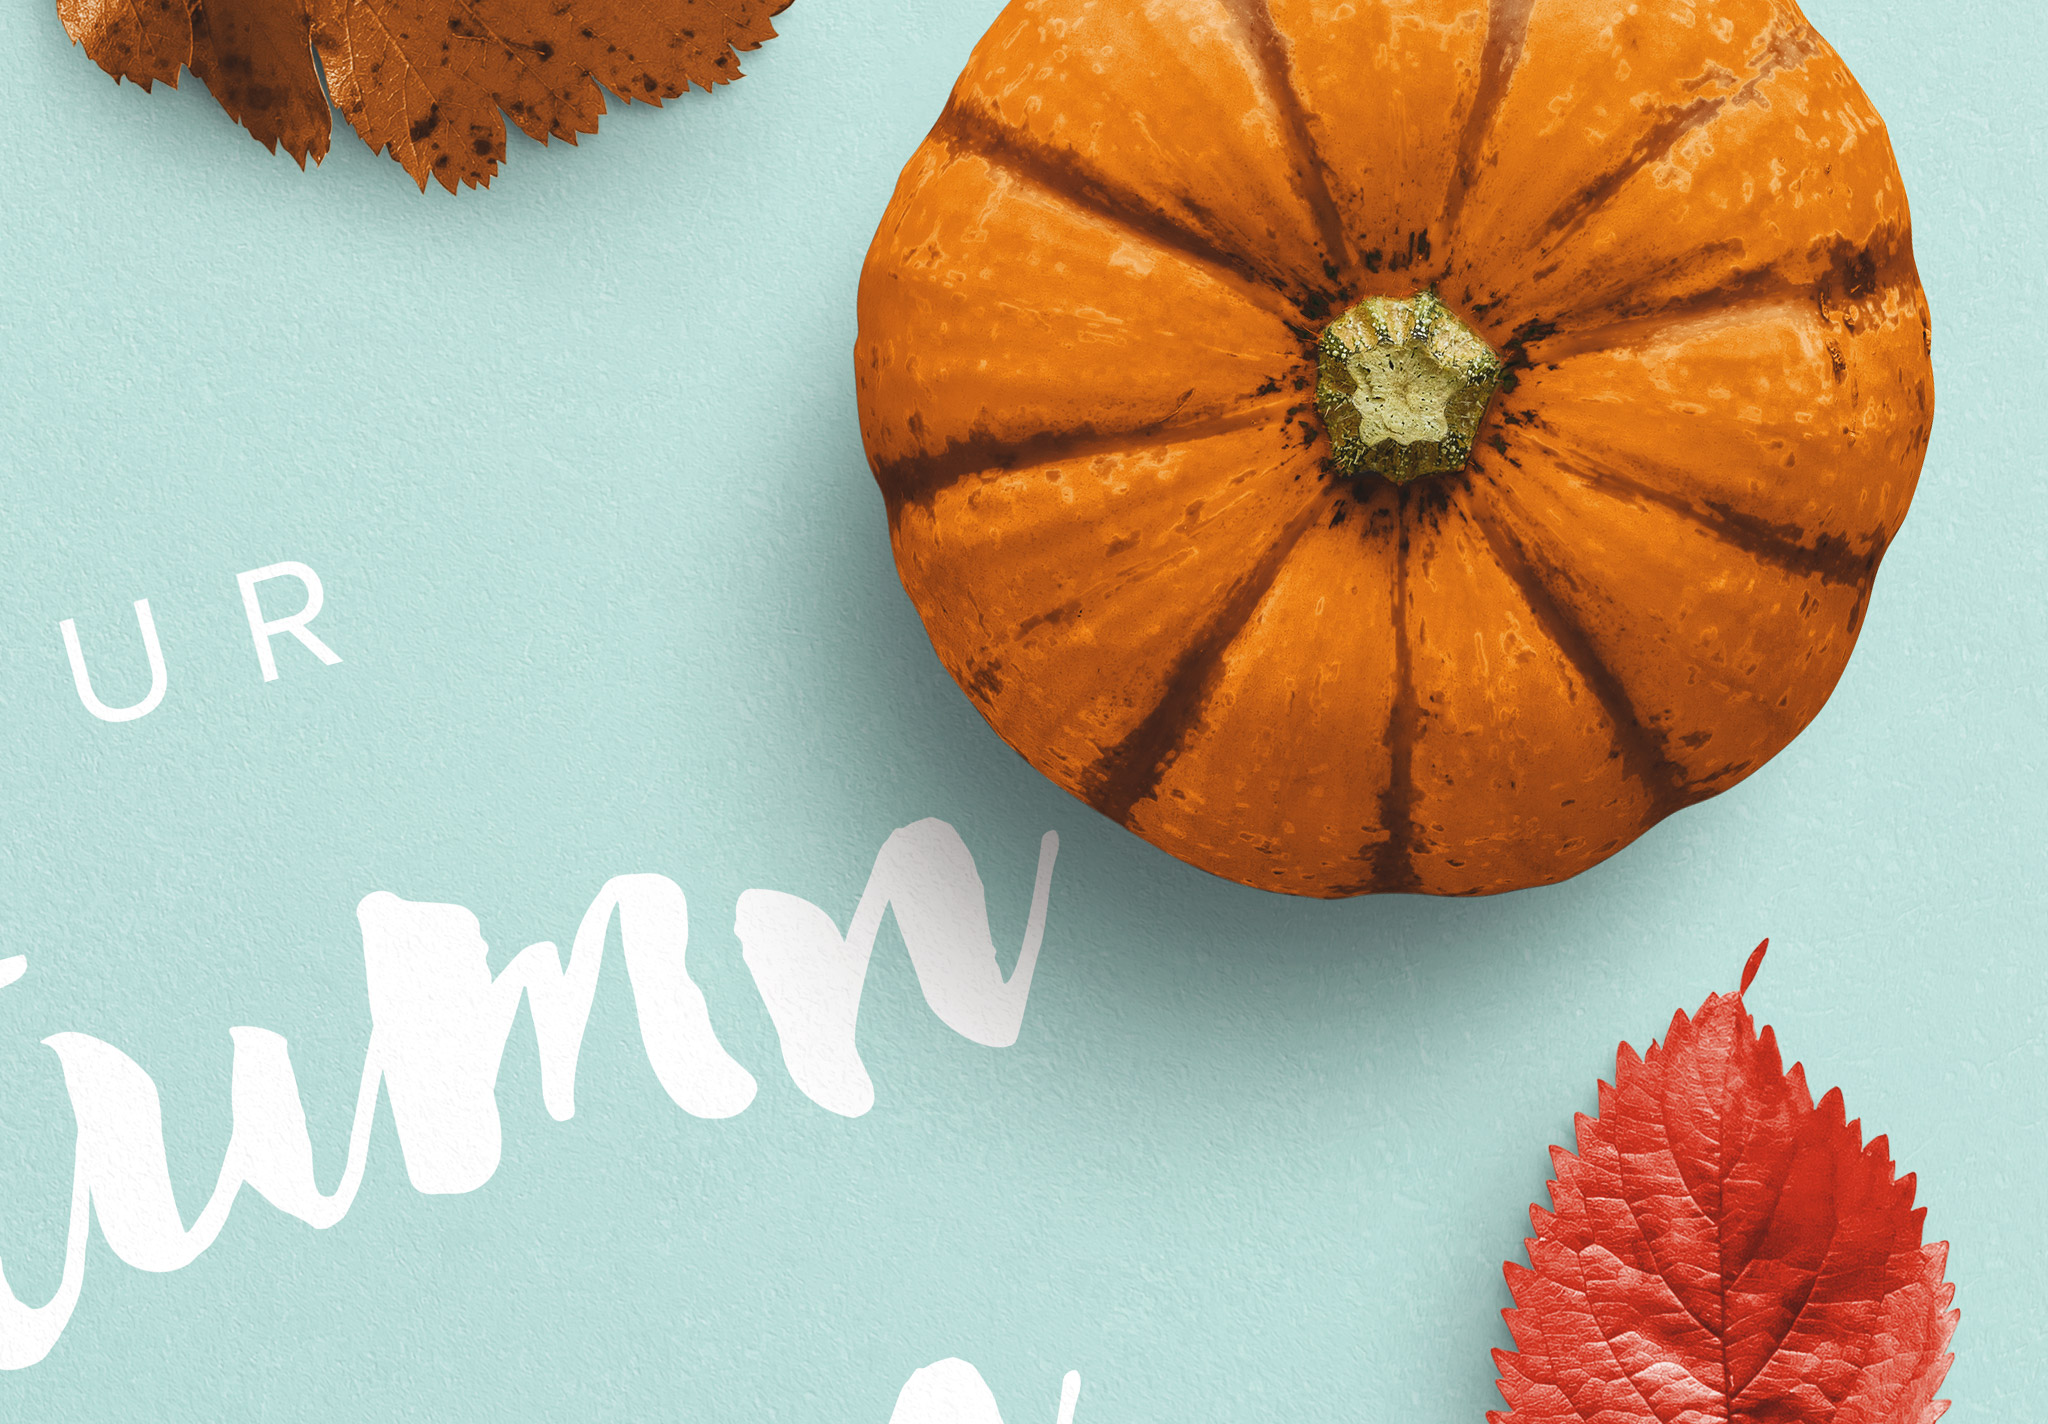 Autumn Frame Pumpkin and Leaves Mockup image04